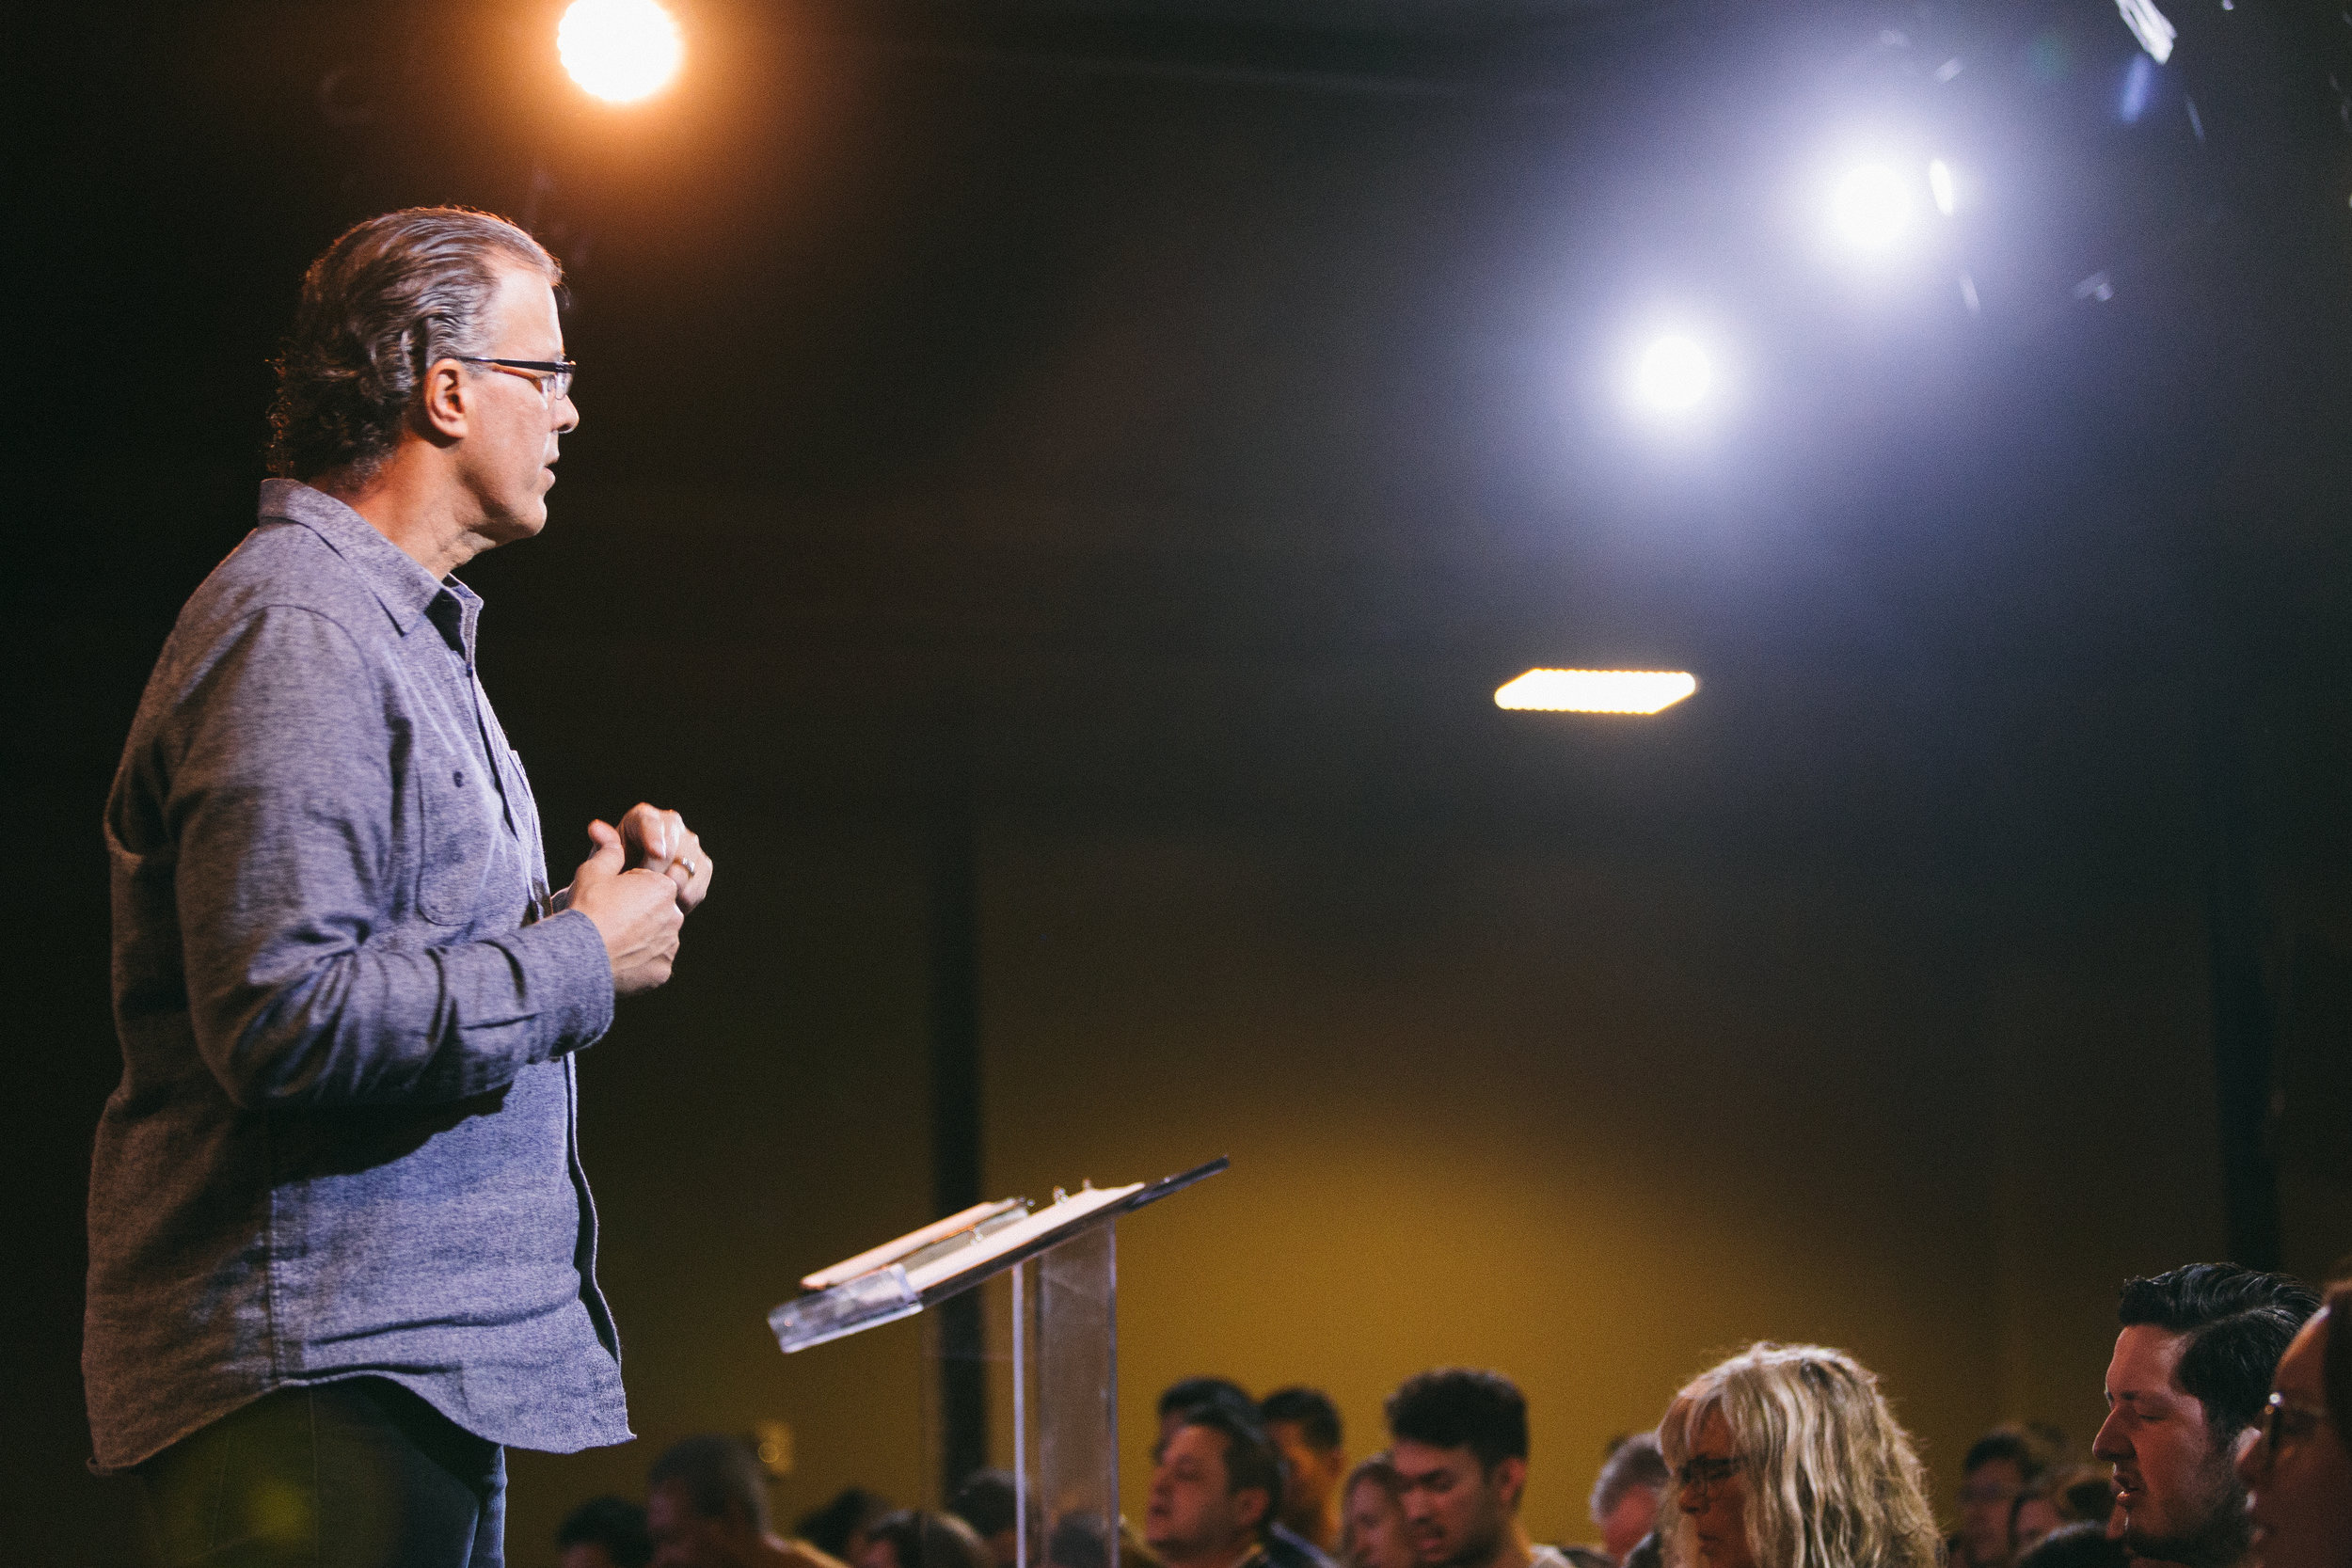 THE GOODNESS OF THE LORD - PASTOR GREG SIMAS